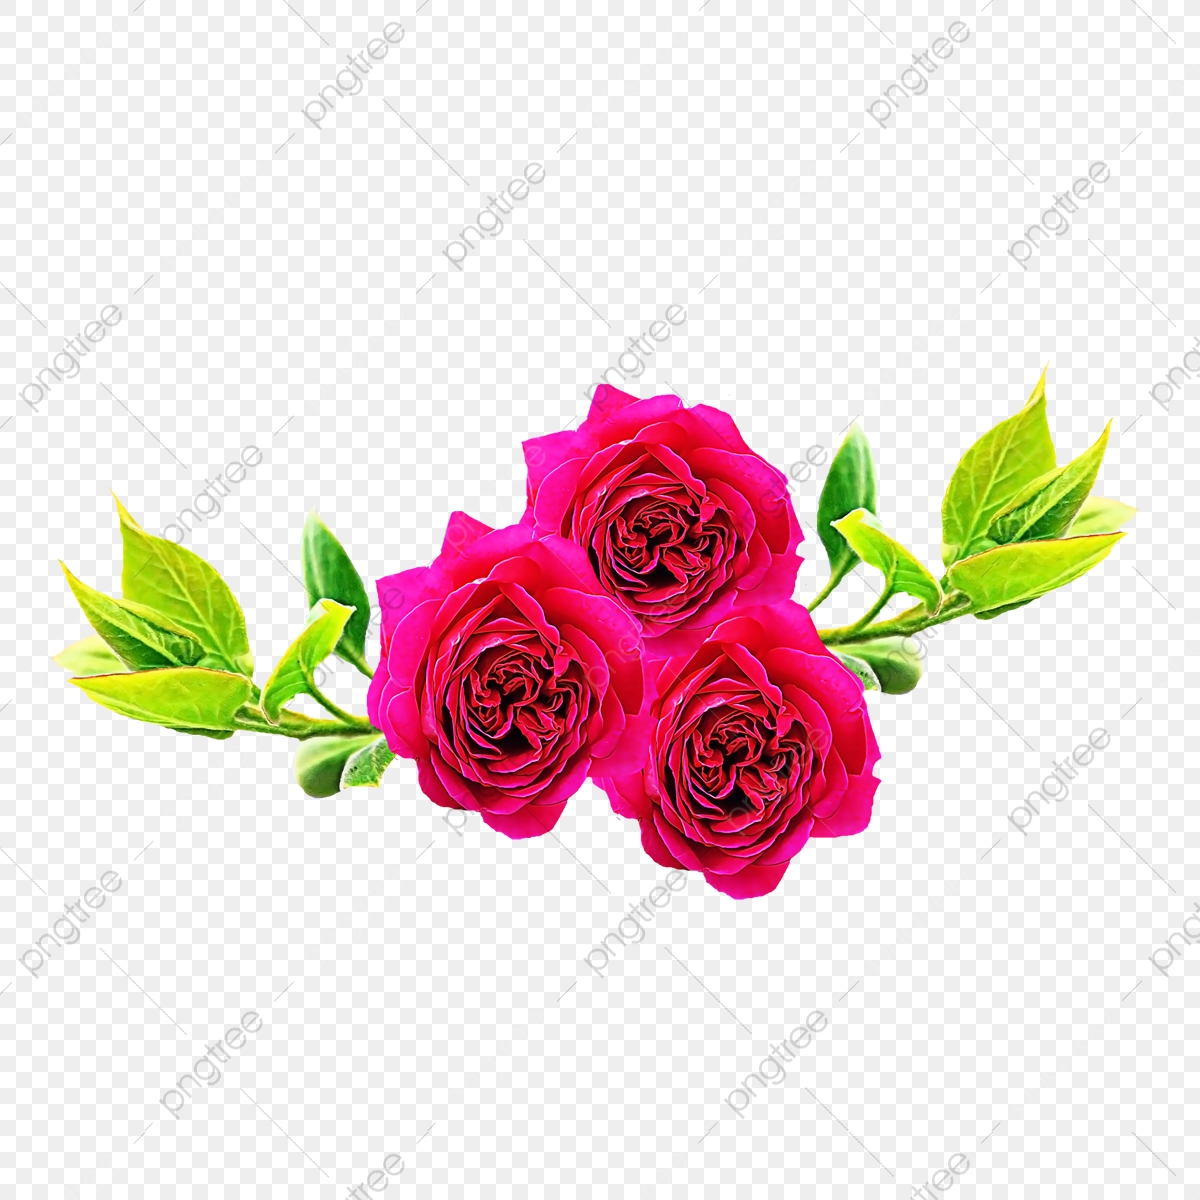 Red flower flowers modern. Rose clipart natural